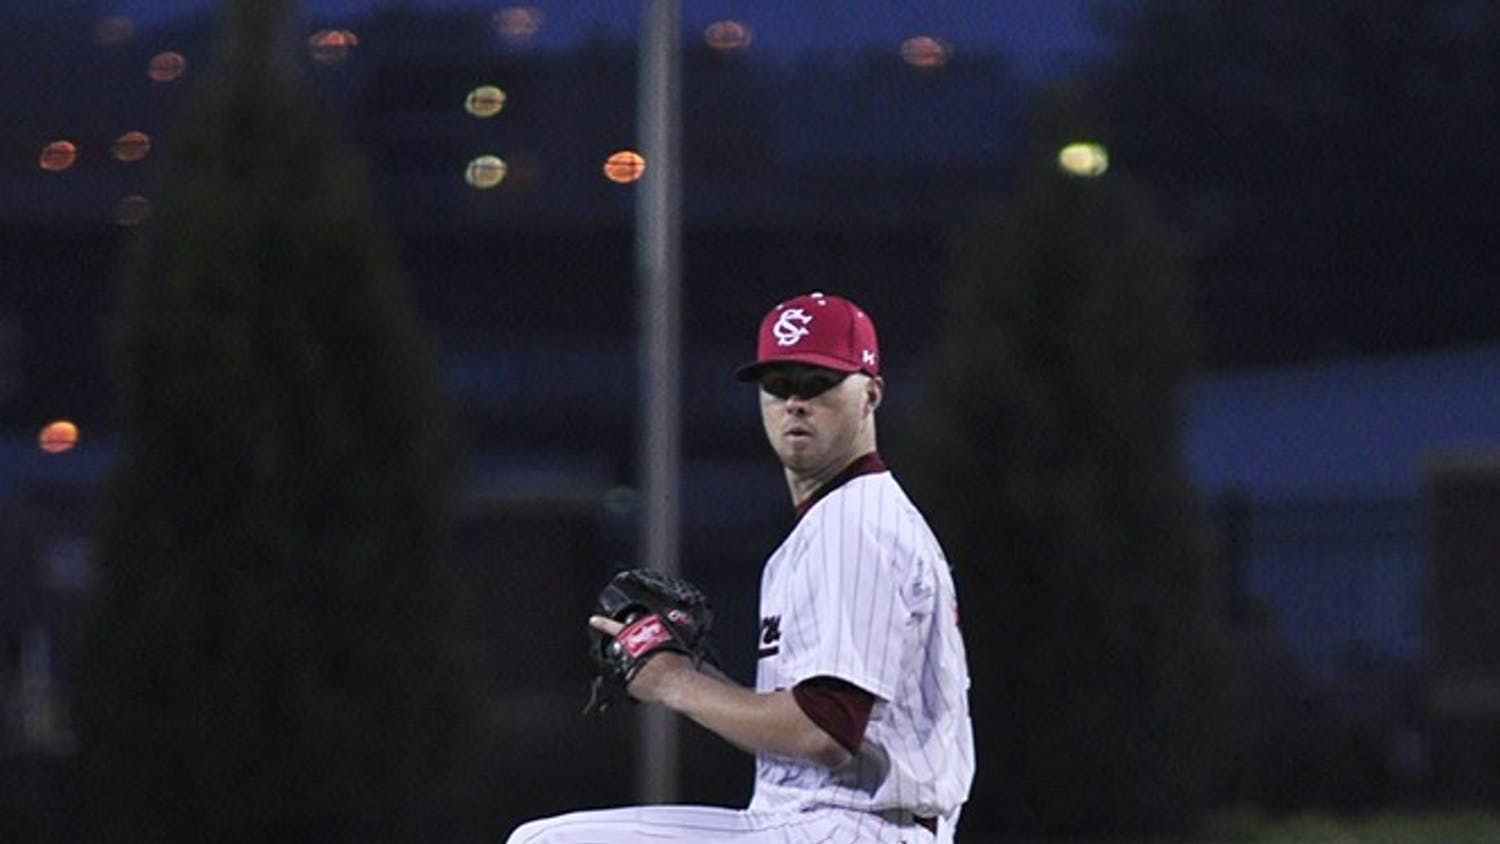 Sophomore Evan Beal took his fi rst loss of the season Friday night after giving up eight runs in 3.2 innings of work.